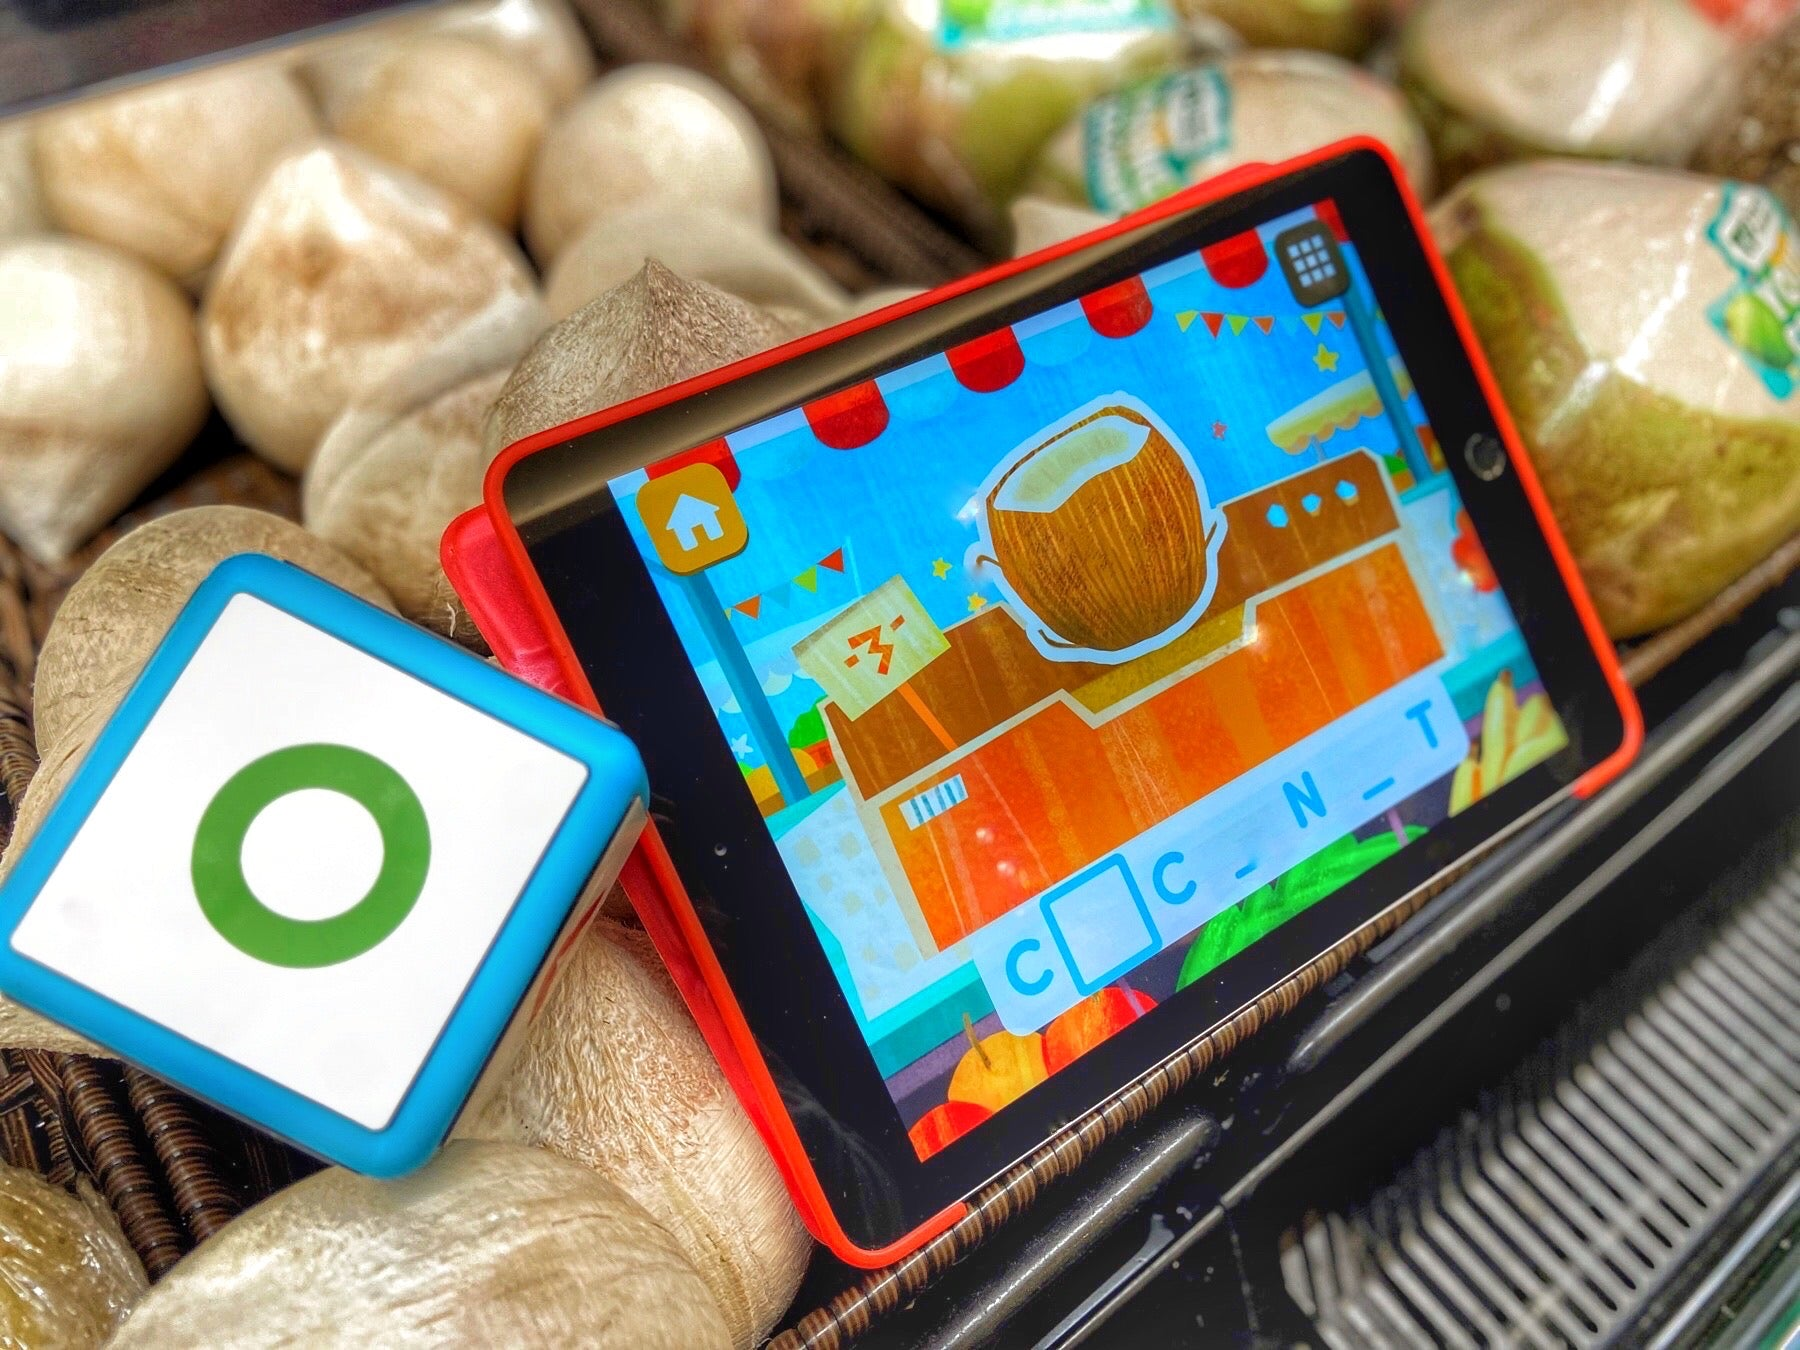 Cookie Kiddle cube and iPad with real coconuts